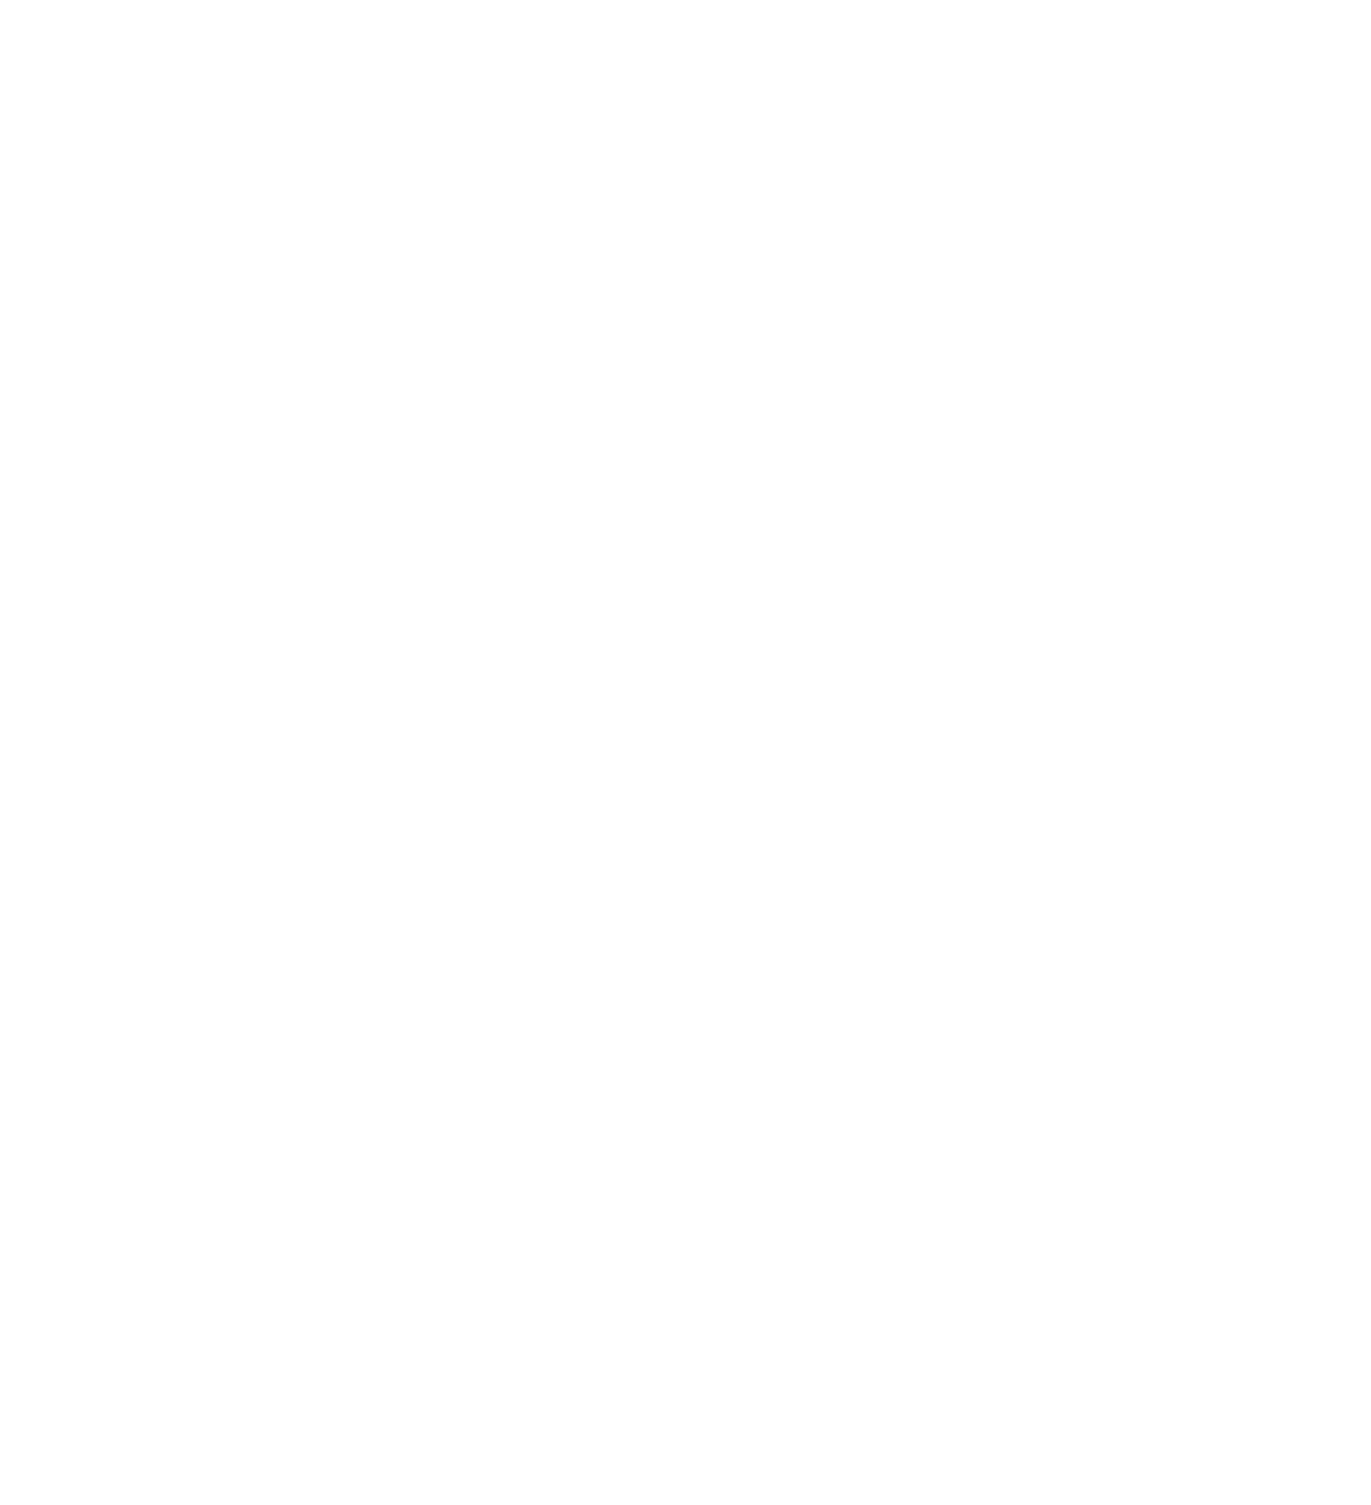 Echo Park Creative Psychology, Inc.